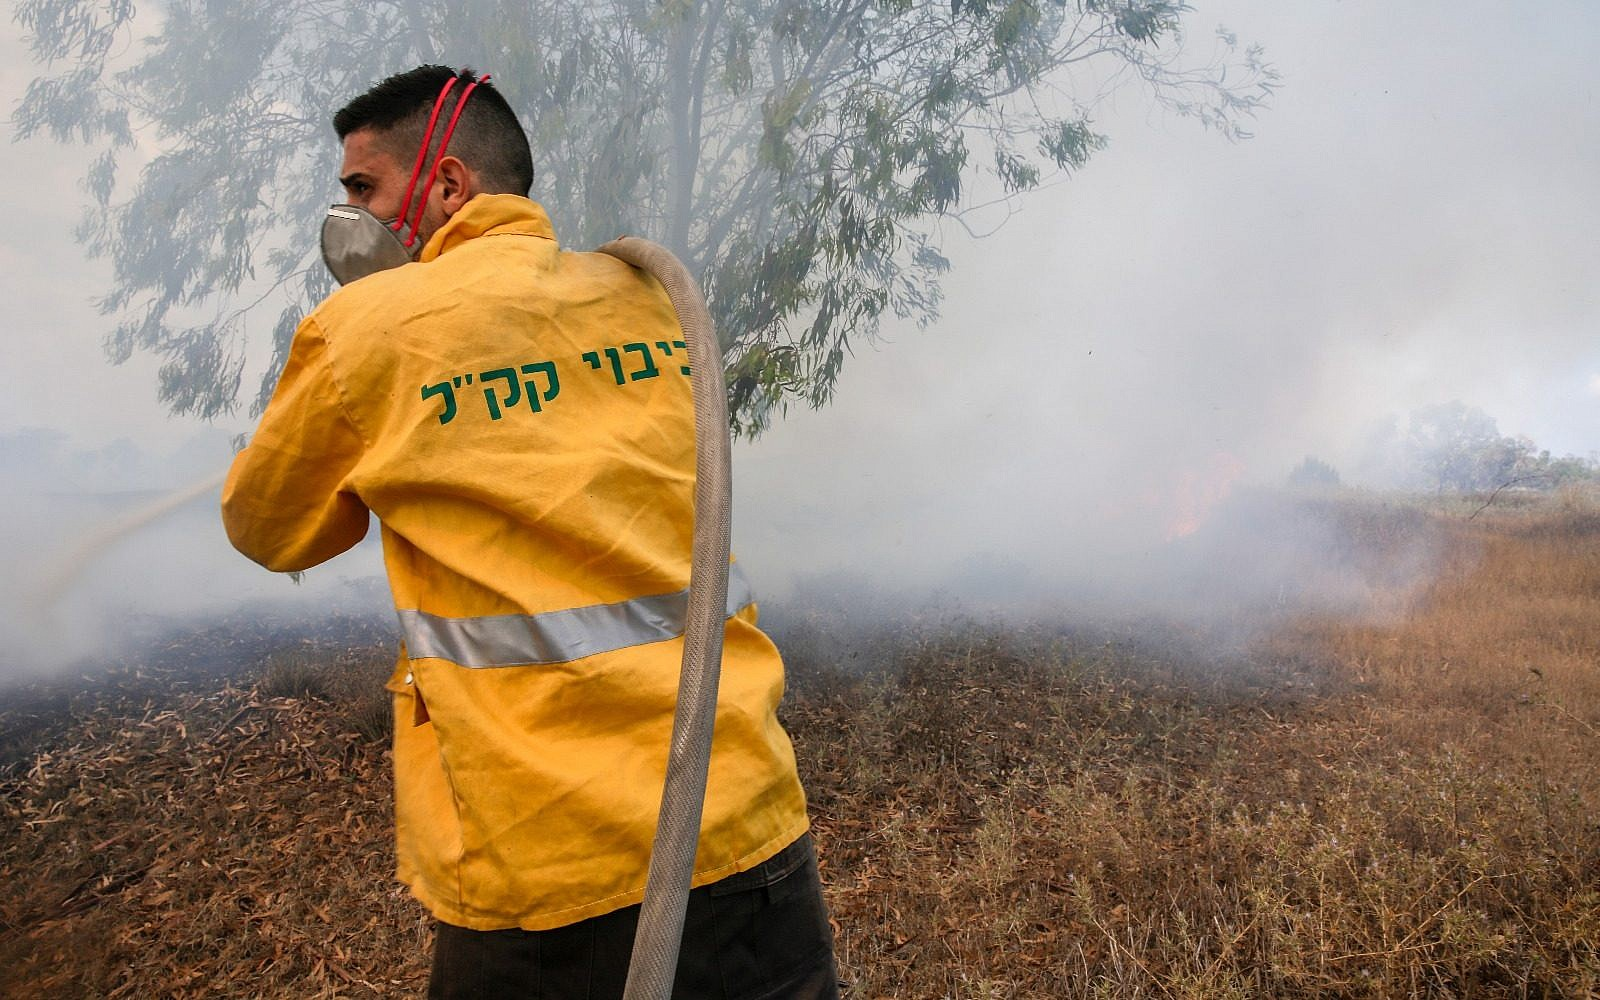 A JNF firefighter tries to put out a blaze in southern Israel near the Gaza border caused by incendiary kites sent from Gaza